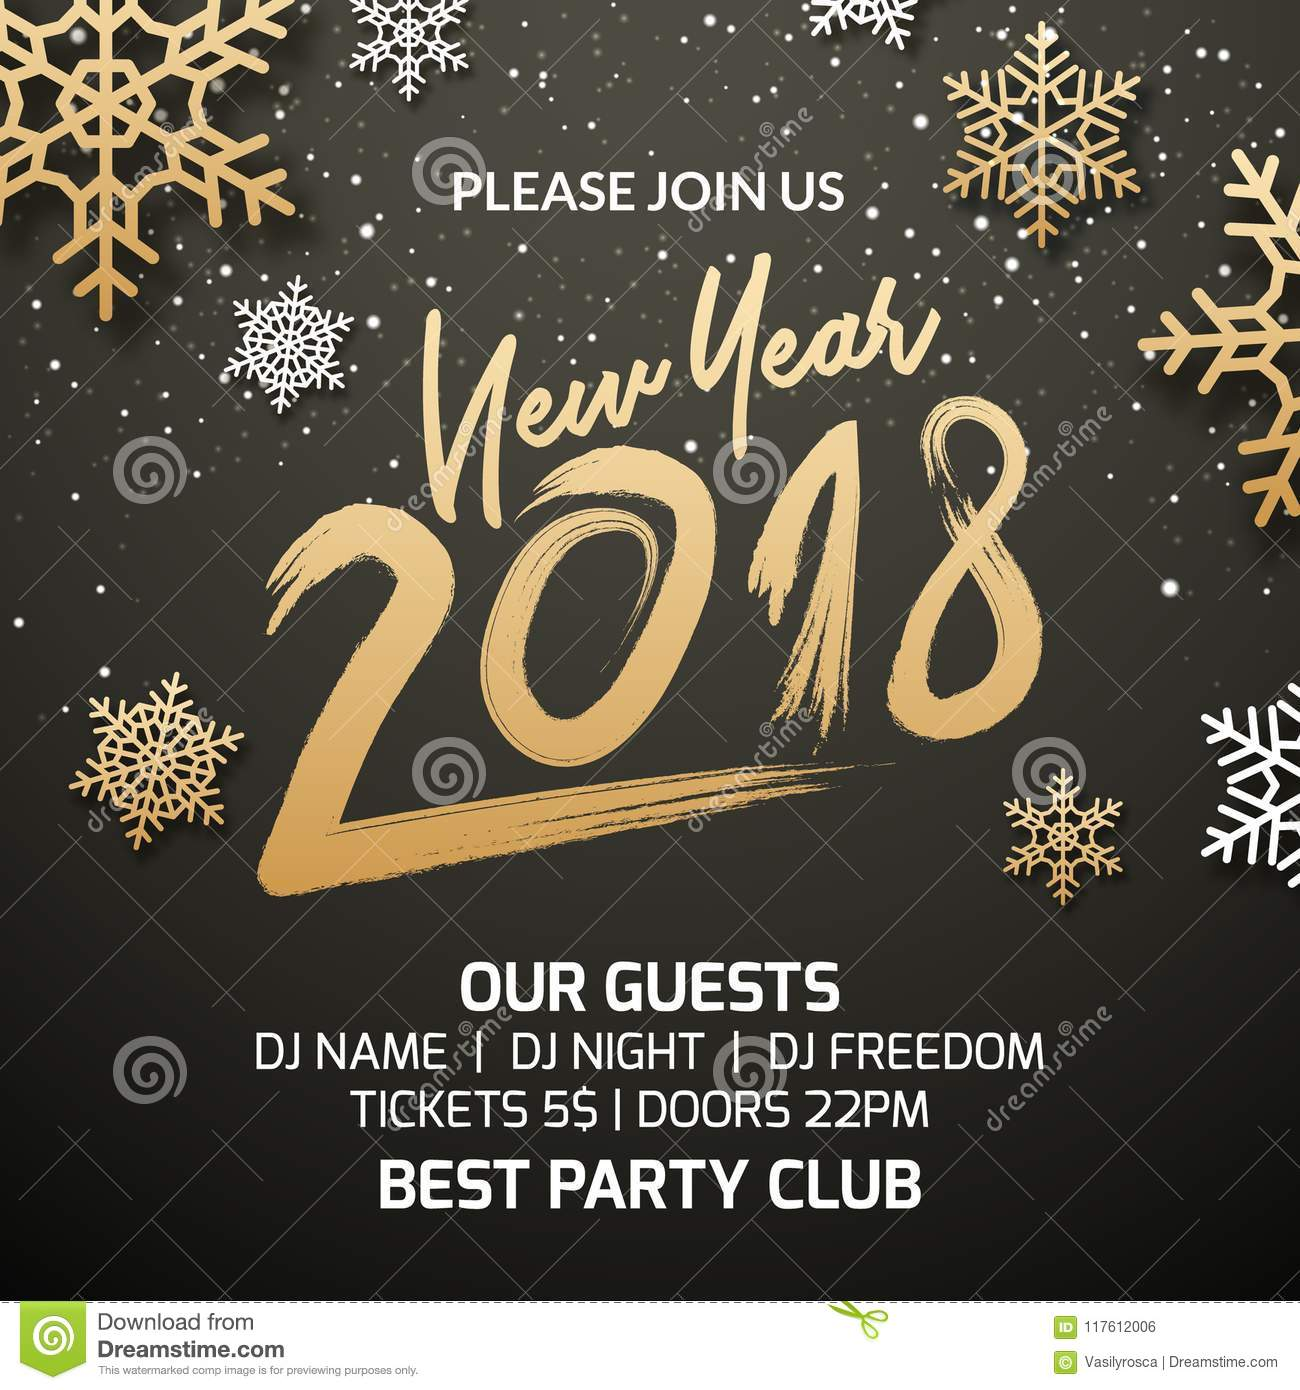 new year 2018 party poster invitation decoration design xmas holiday template background with snowflakes